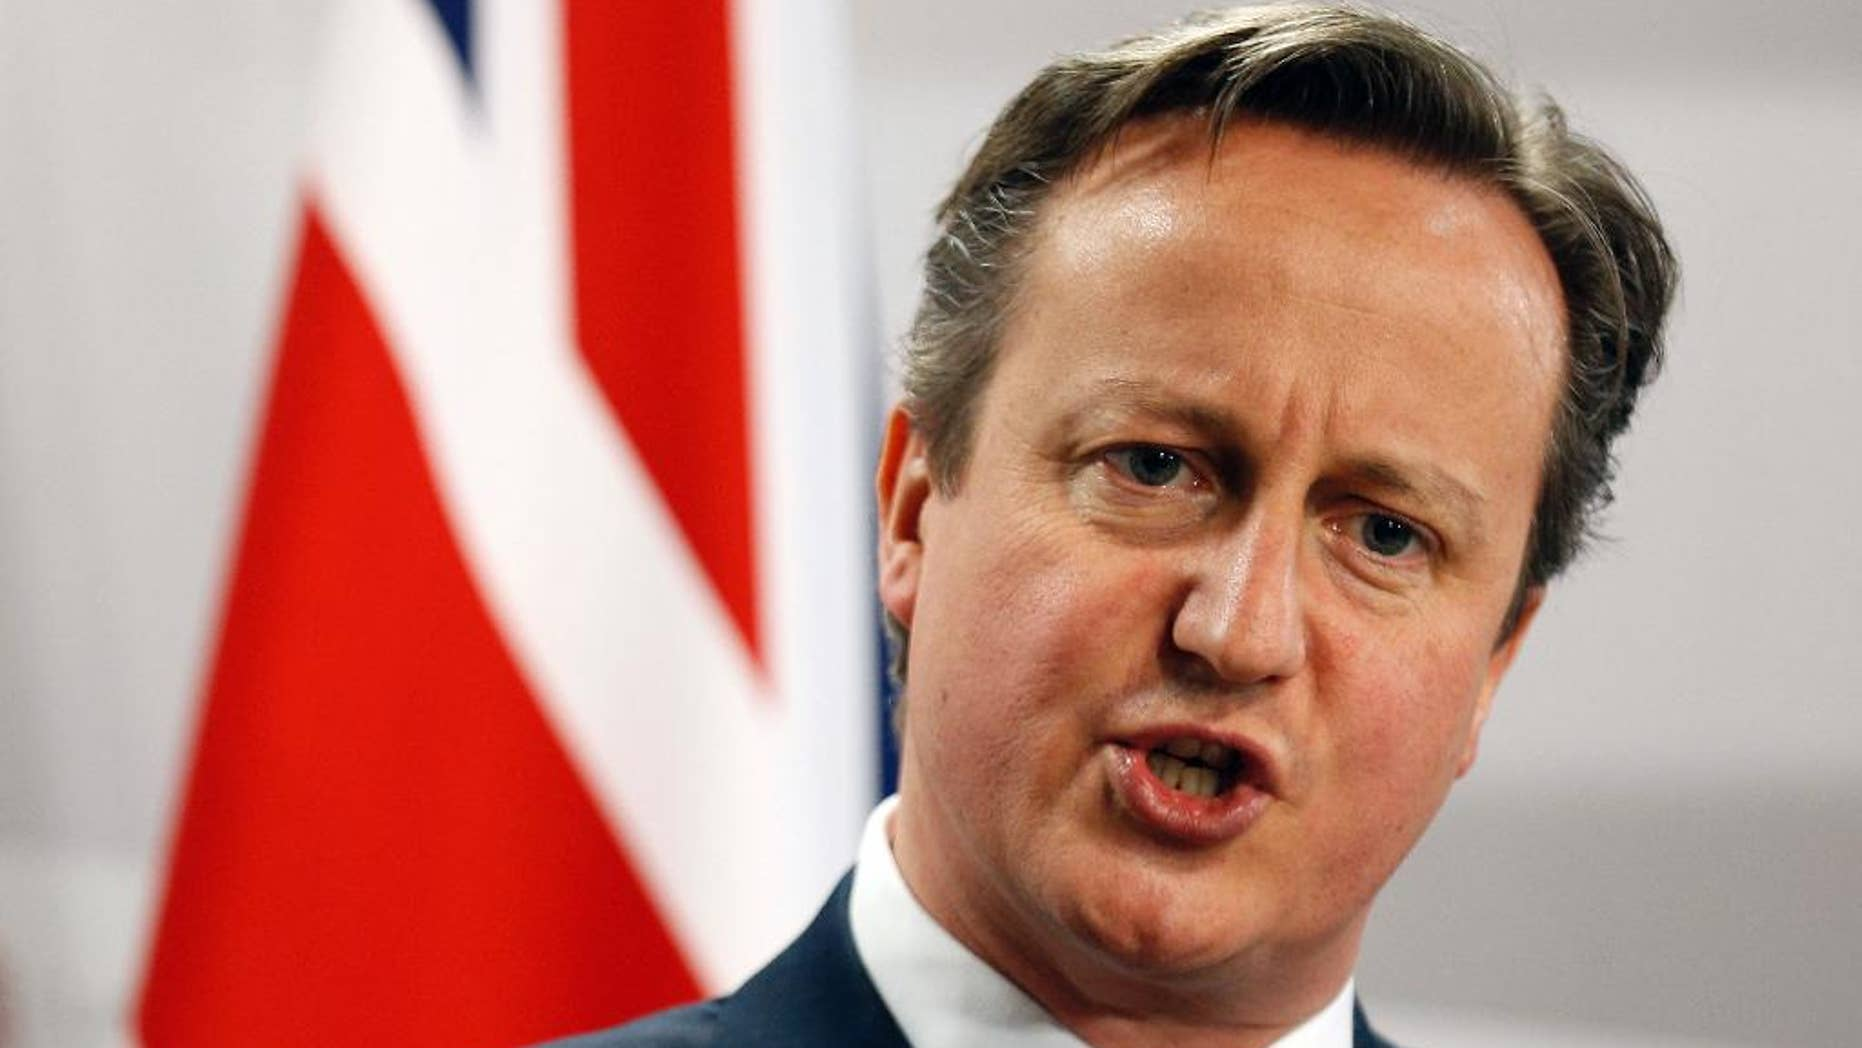 """FILE - This is a Friday, May 22, 2015  file photo of British Prime Minister David Cameron as he speaks during a media conference at the conclusion of the Eastern Partnership summit in Riga, Latvia. An influential group of lawmakers says launching British airstrikes against Islamic State group militants in Syria would be """"incoherent"""" and ineffective without a plan to end the country's civil war. The Foreign Affairs Select Committee has dealt a blow to Prime Minister David Cameron's attempts to expand British military action against the militants from Iraq into Syria. In a report published Tuesday, Nov. 3, 2015 the foreign affairs committee said Russia's intervention in the conflict in support of Bashar Assad's government """"has complicated even further any proposed action in Syria by the U.K."""" (AP Photo/Mindaugas Kulbis, File)"""